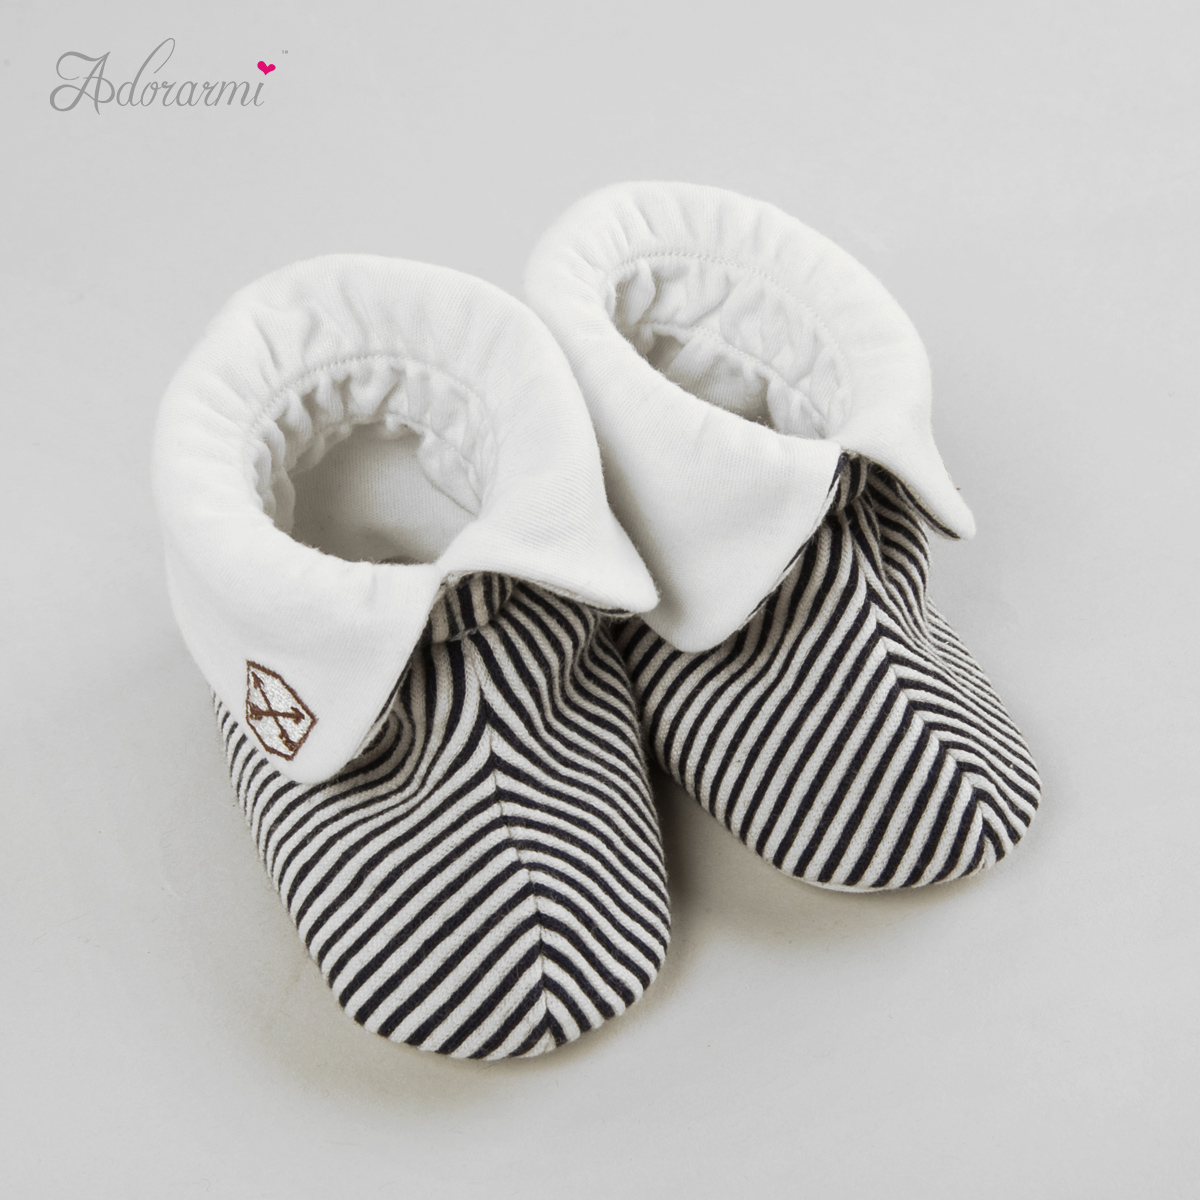 Honey love autumn and winter spring and autumn cotton baby booties newborn baby booties newborn baby socks children striped shoes